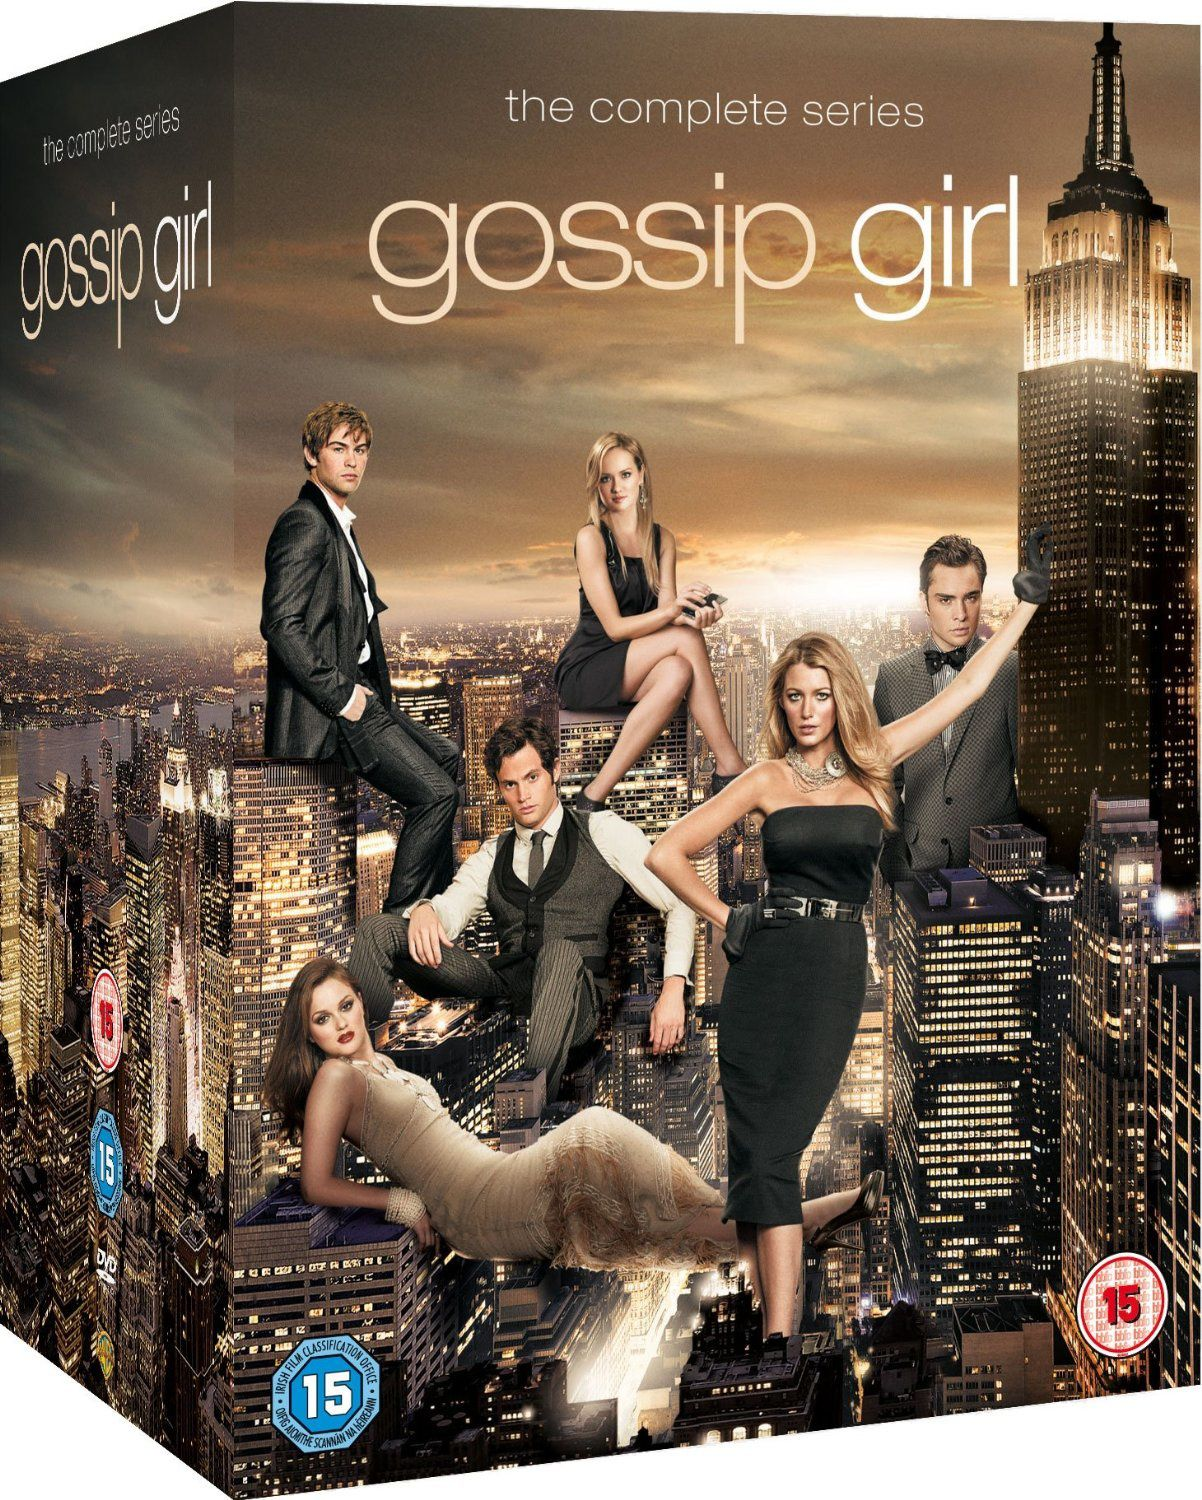 Gossip girl, l'intégrale totale en dvd en France